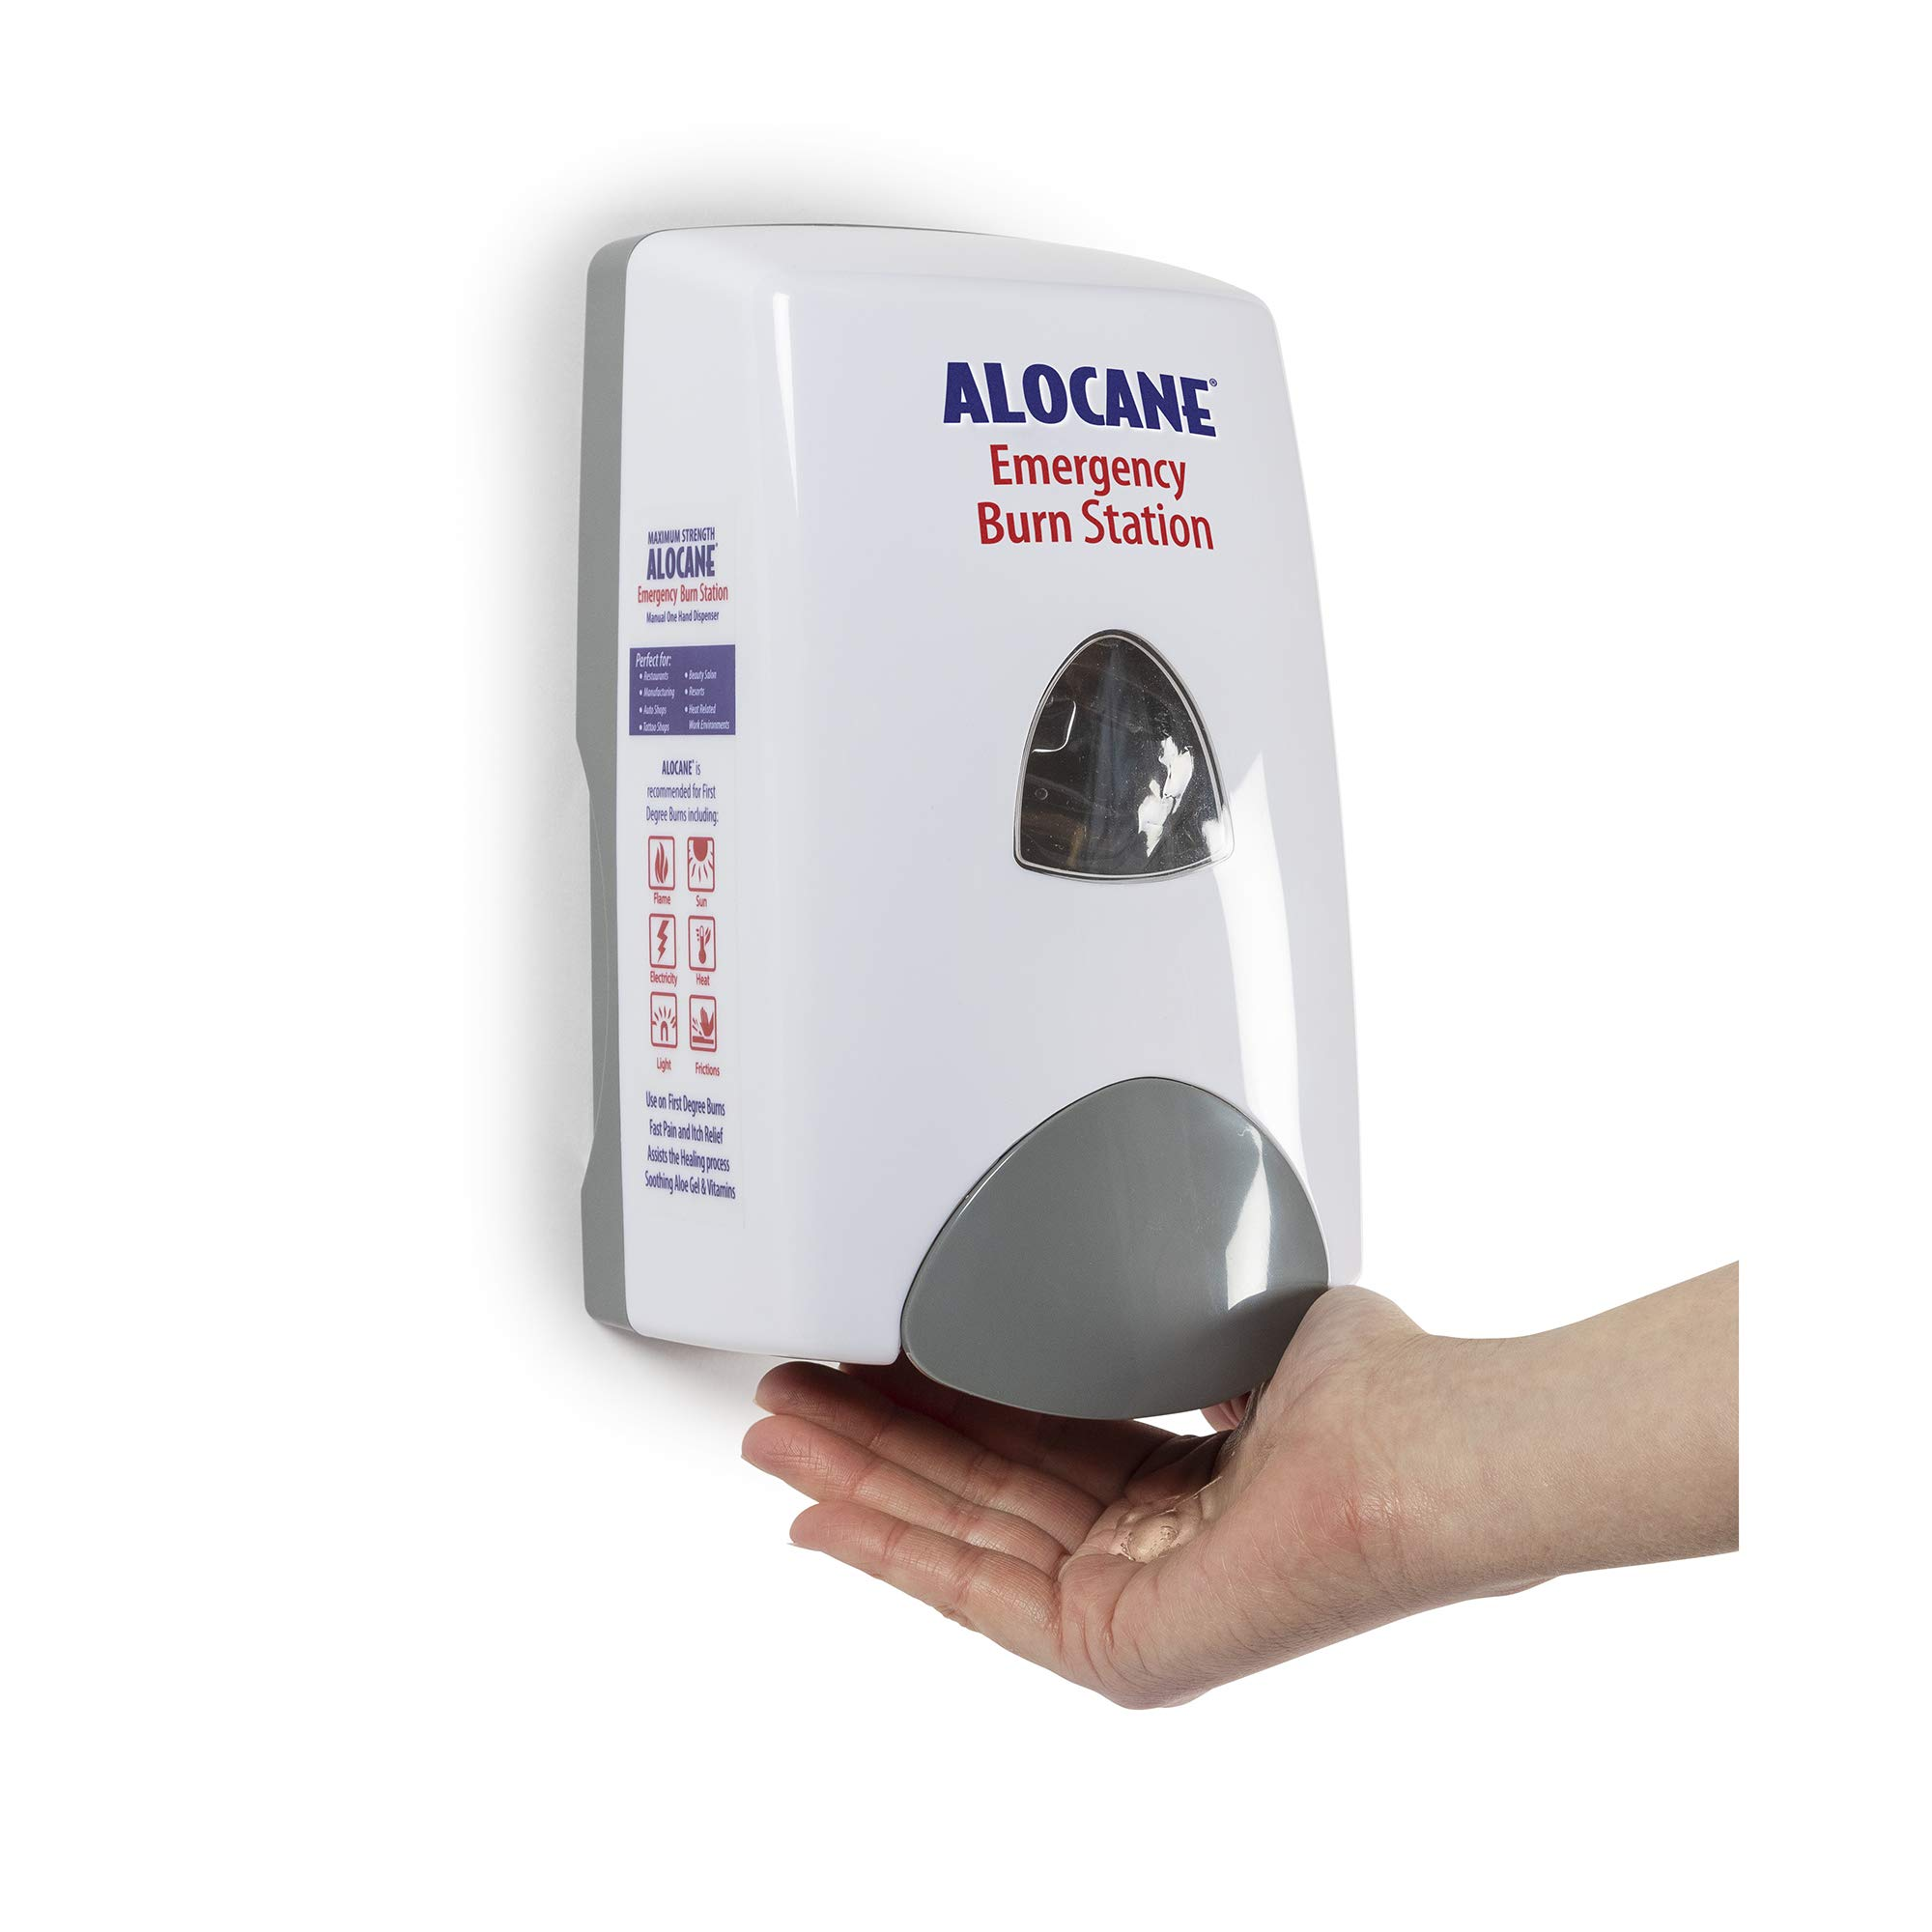 Alocane Maximum Strength 4% Lidocaine Emergency Burn Gel Burn Station Dispenser, Commercial Grade, Aloe Vera, Vitamin E, Great for Restaurants and Other Heat Related Work environments by Alocane